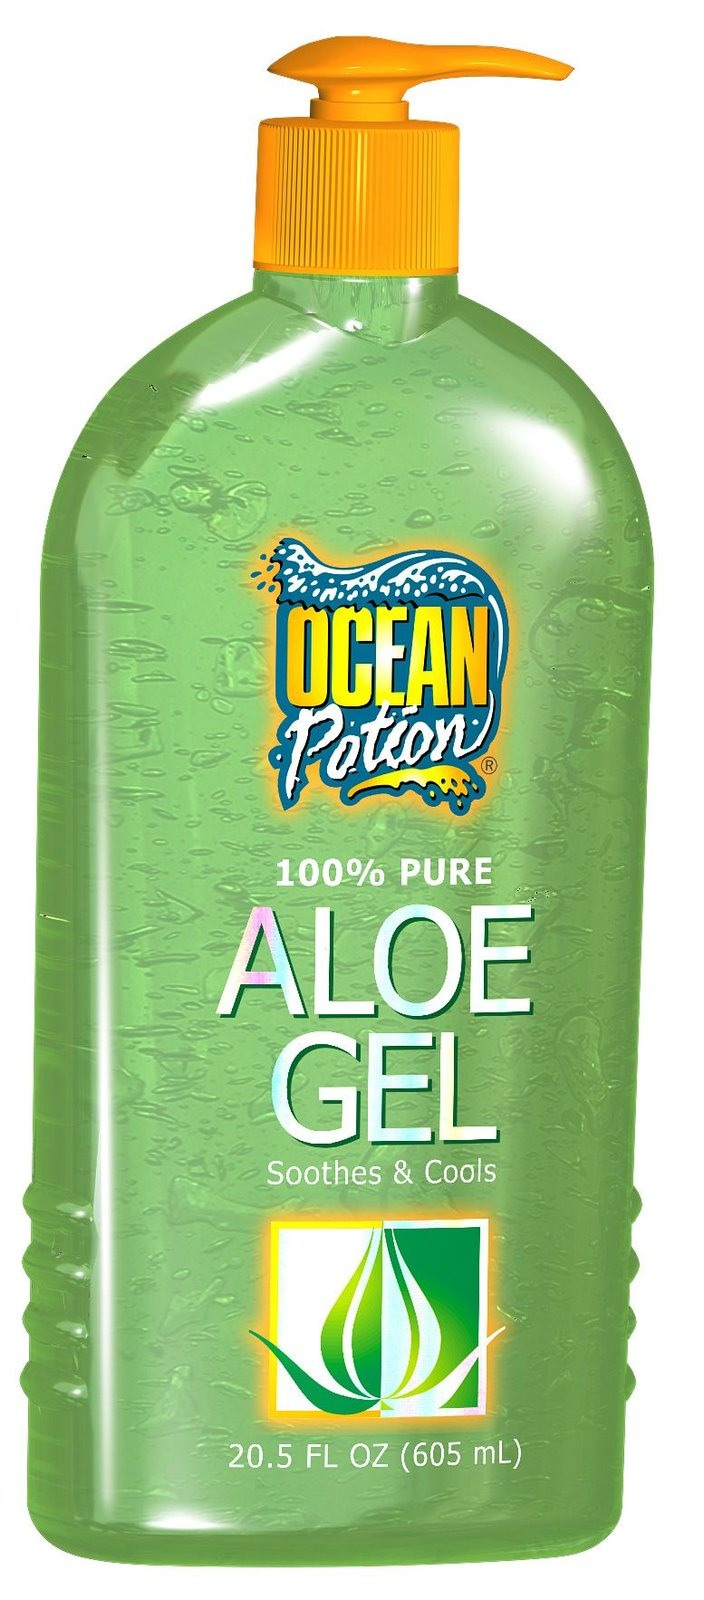 You can use Aloe Vera gel and it does the same thing as your regular gel.